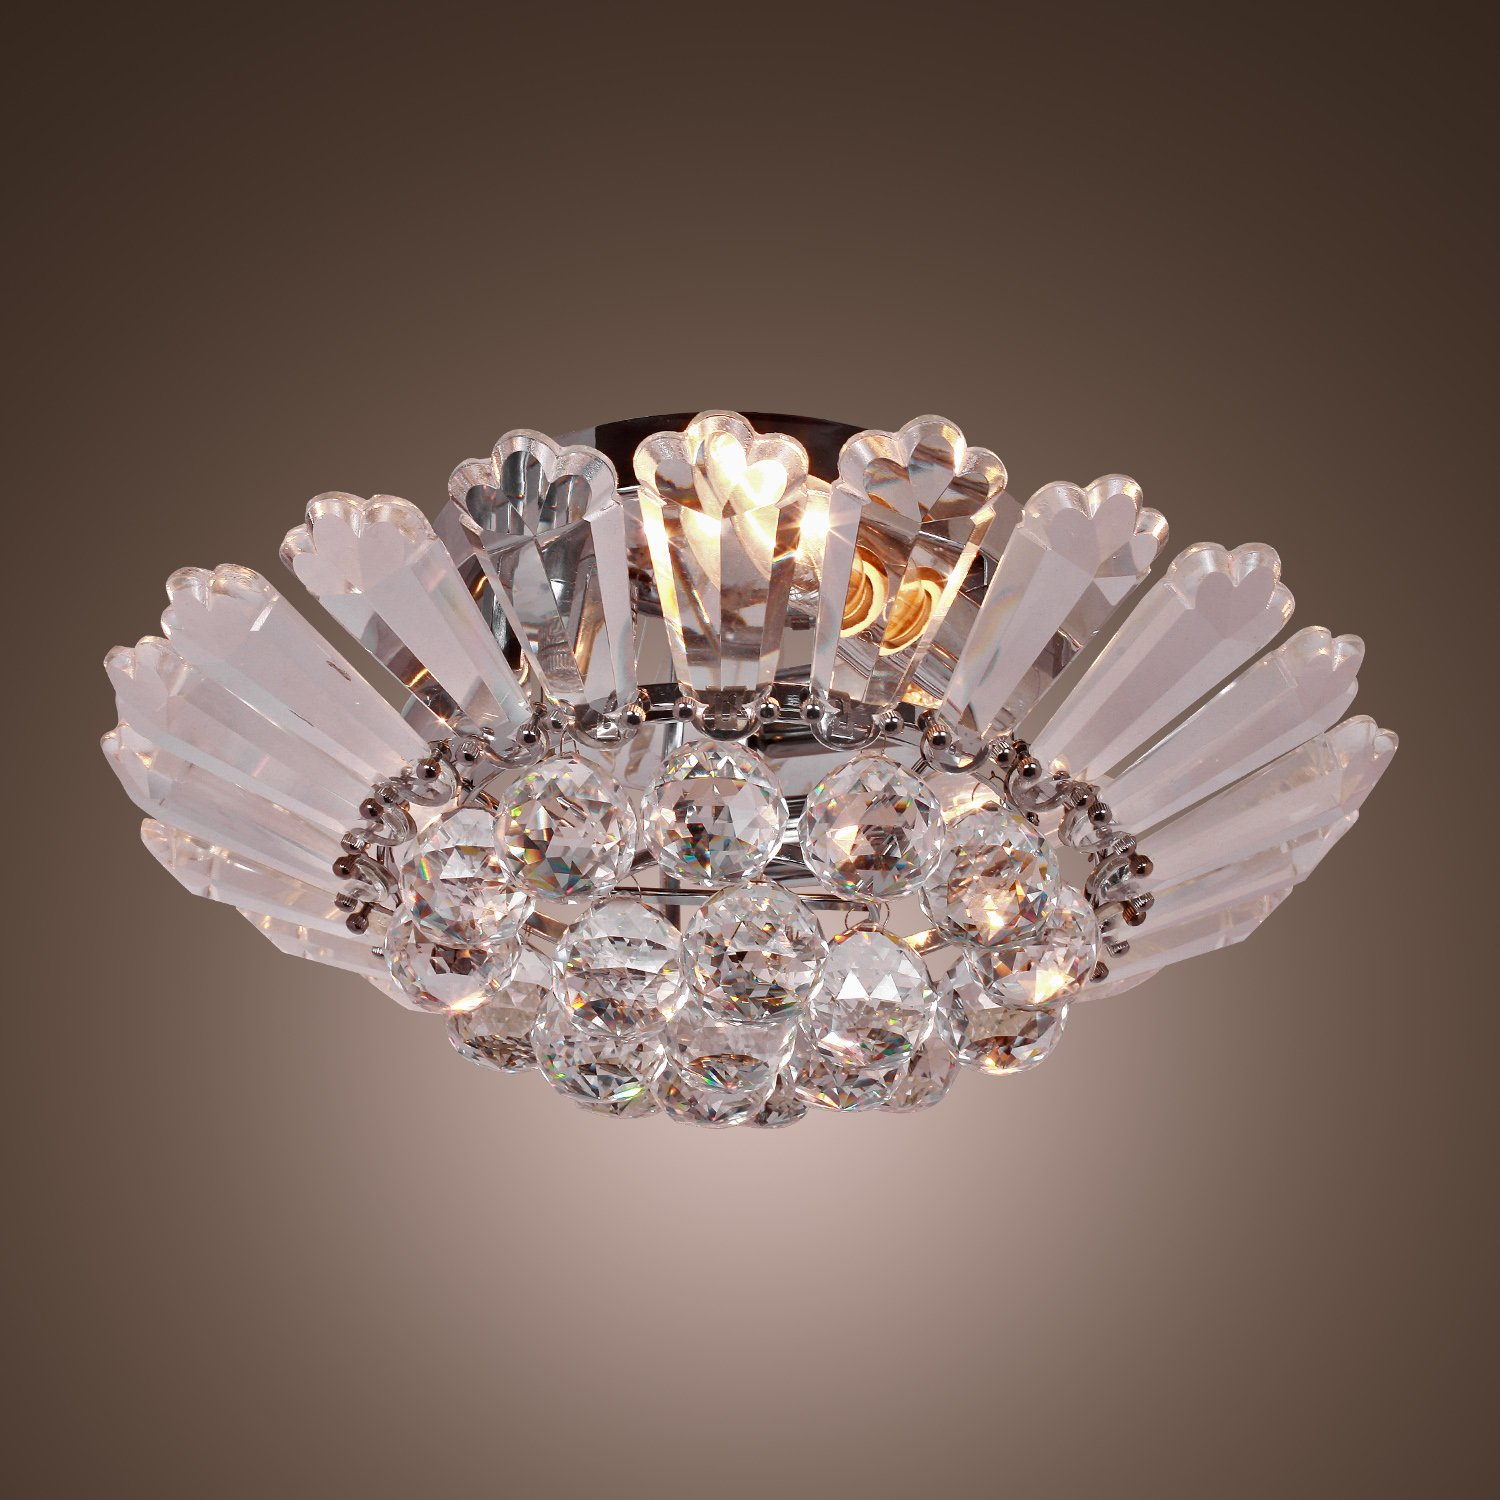 Lightinthebox modern semi flush mount in crystal feature home lightinthebox modern semi flush mount in crystal feature home ceiling light fixture chandeliers lighting for dining room bedroom living room close to arubaitofo Image collections